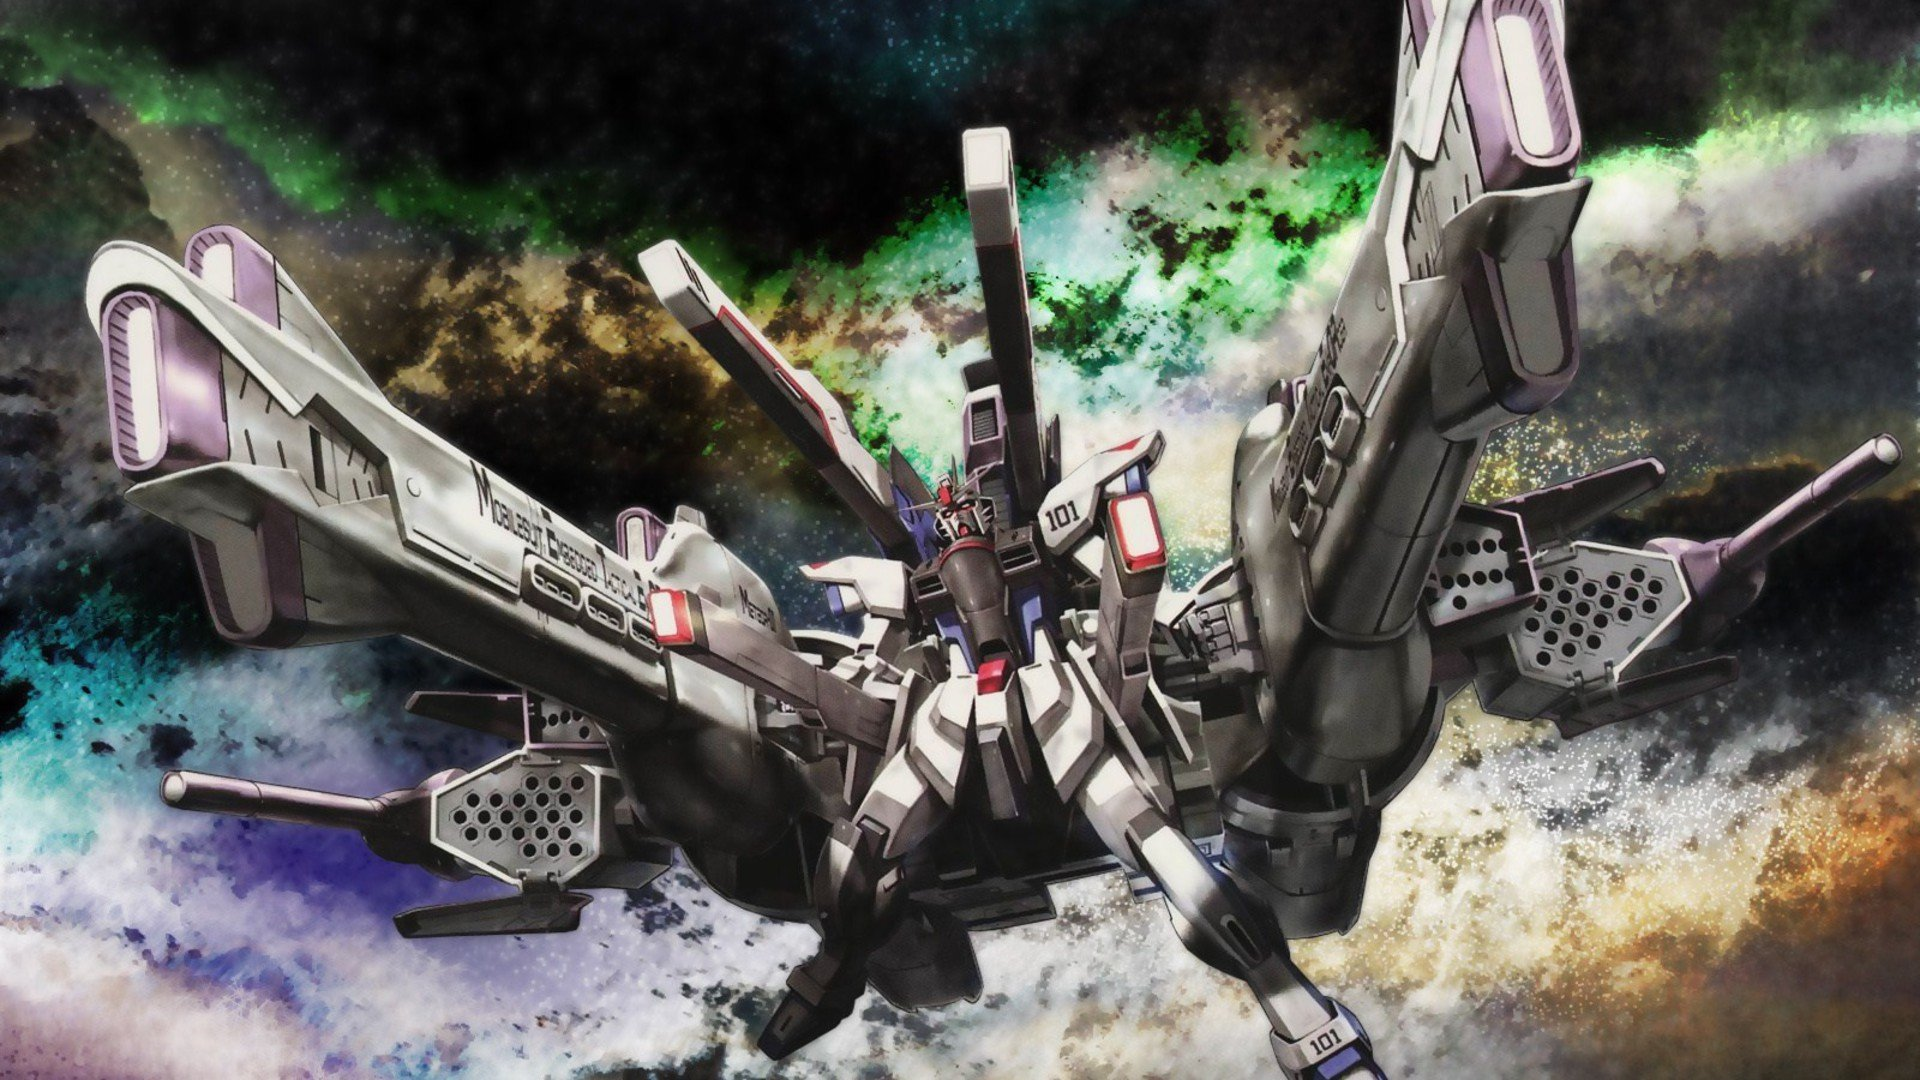 Free download Gundam wallpaper ID:115128 full hd 1080p for desktop